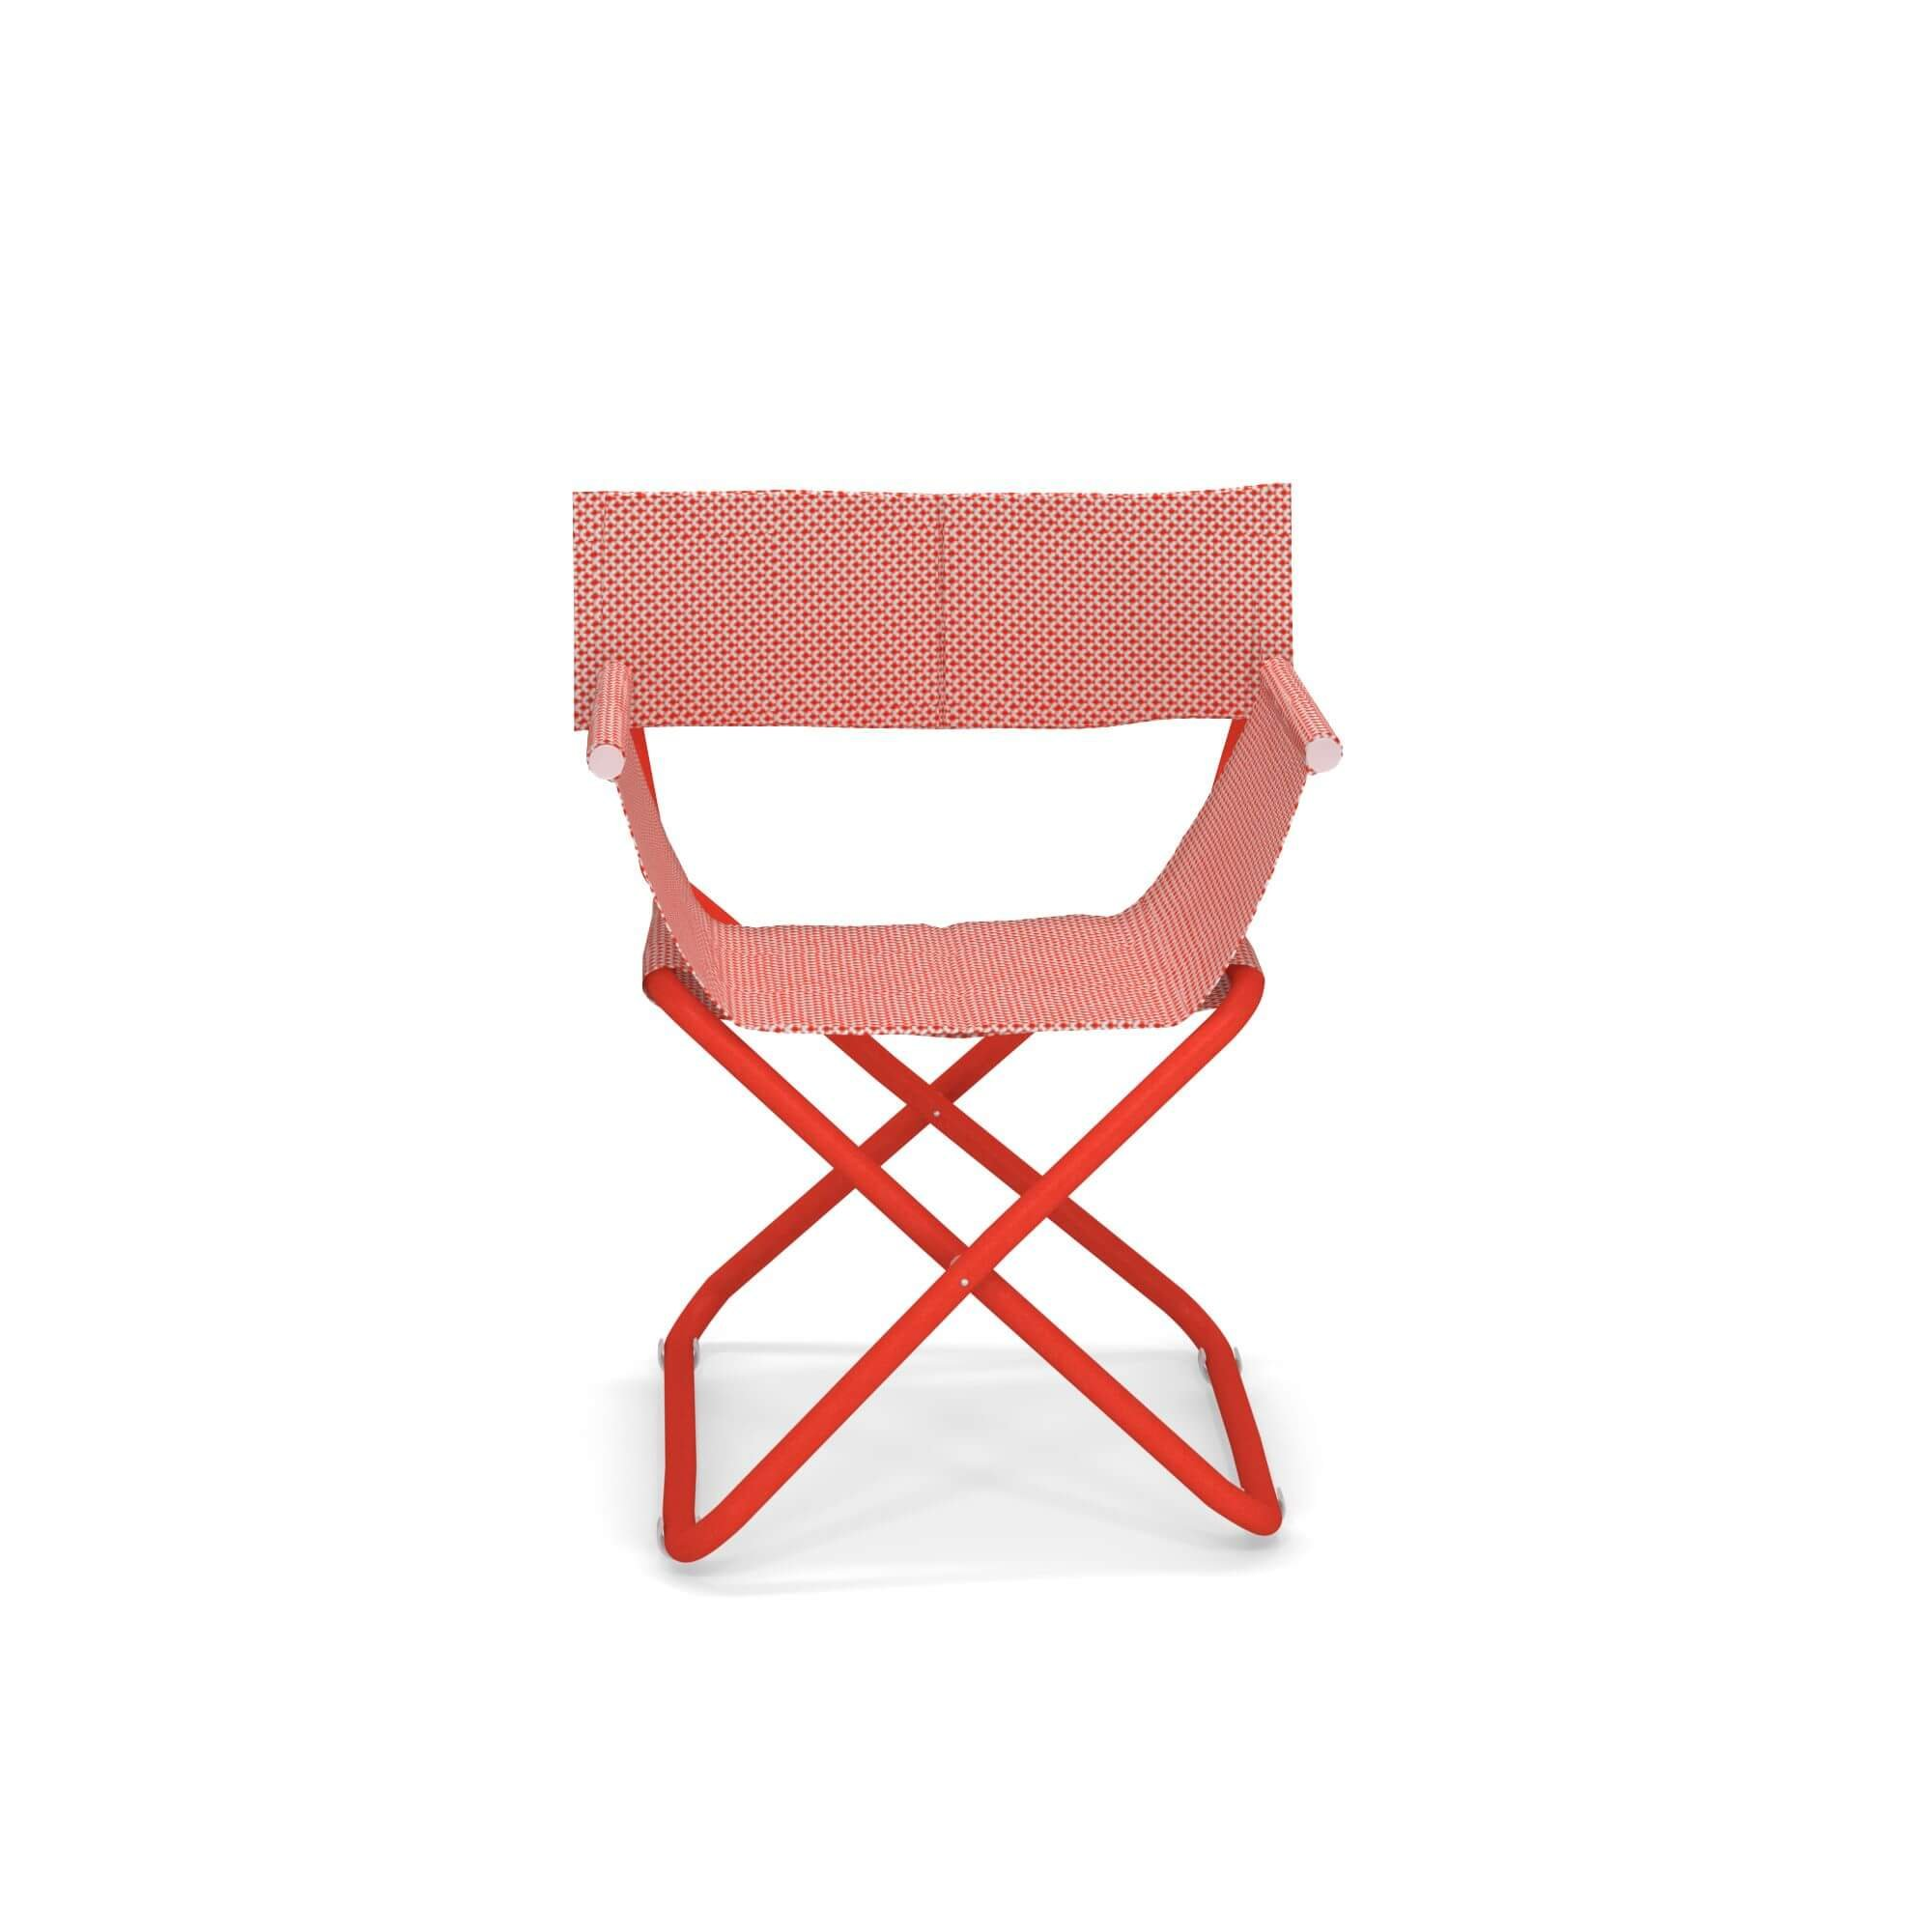 Snooze Director's Chair lounge from Emu, designed by Chiaramonte and Marin